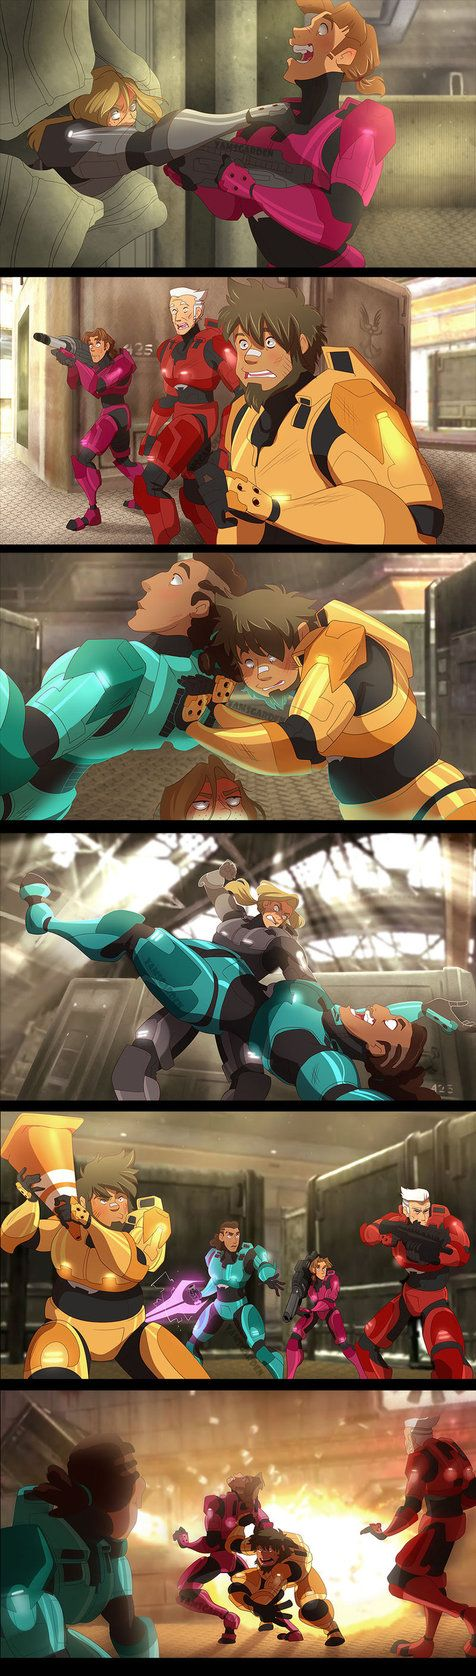 Red VS Blue - Screenshots redraws 1 by YAMsgarden.deviantart.com on @DeviantArt